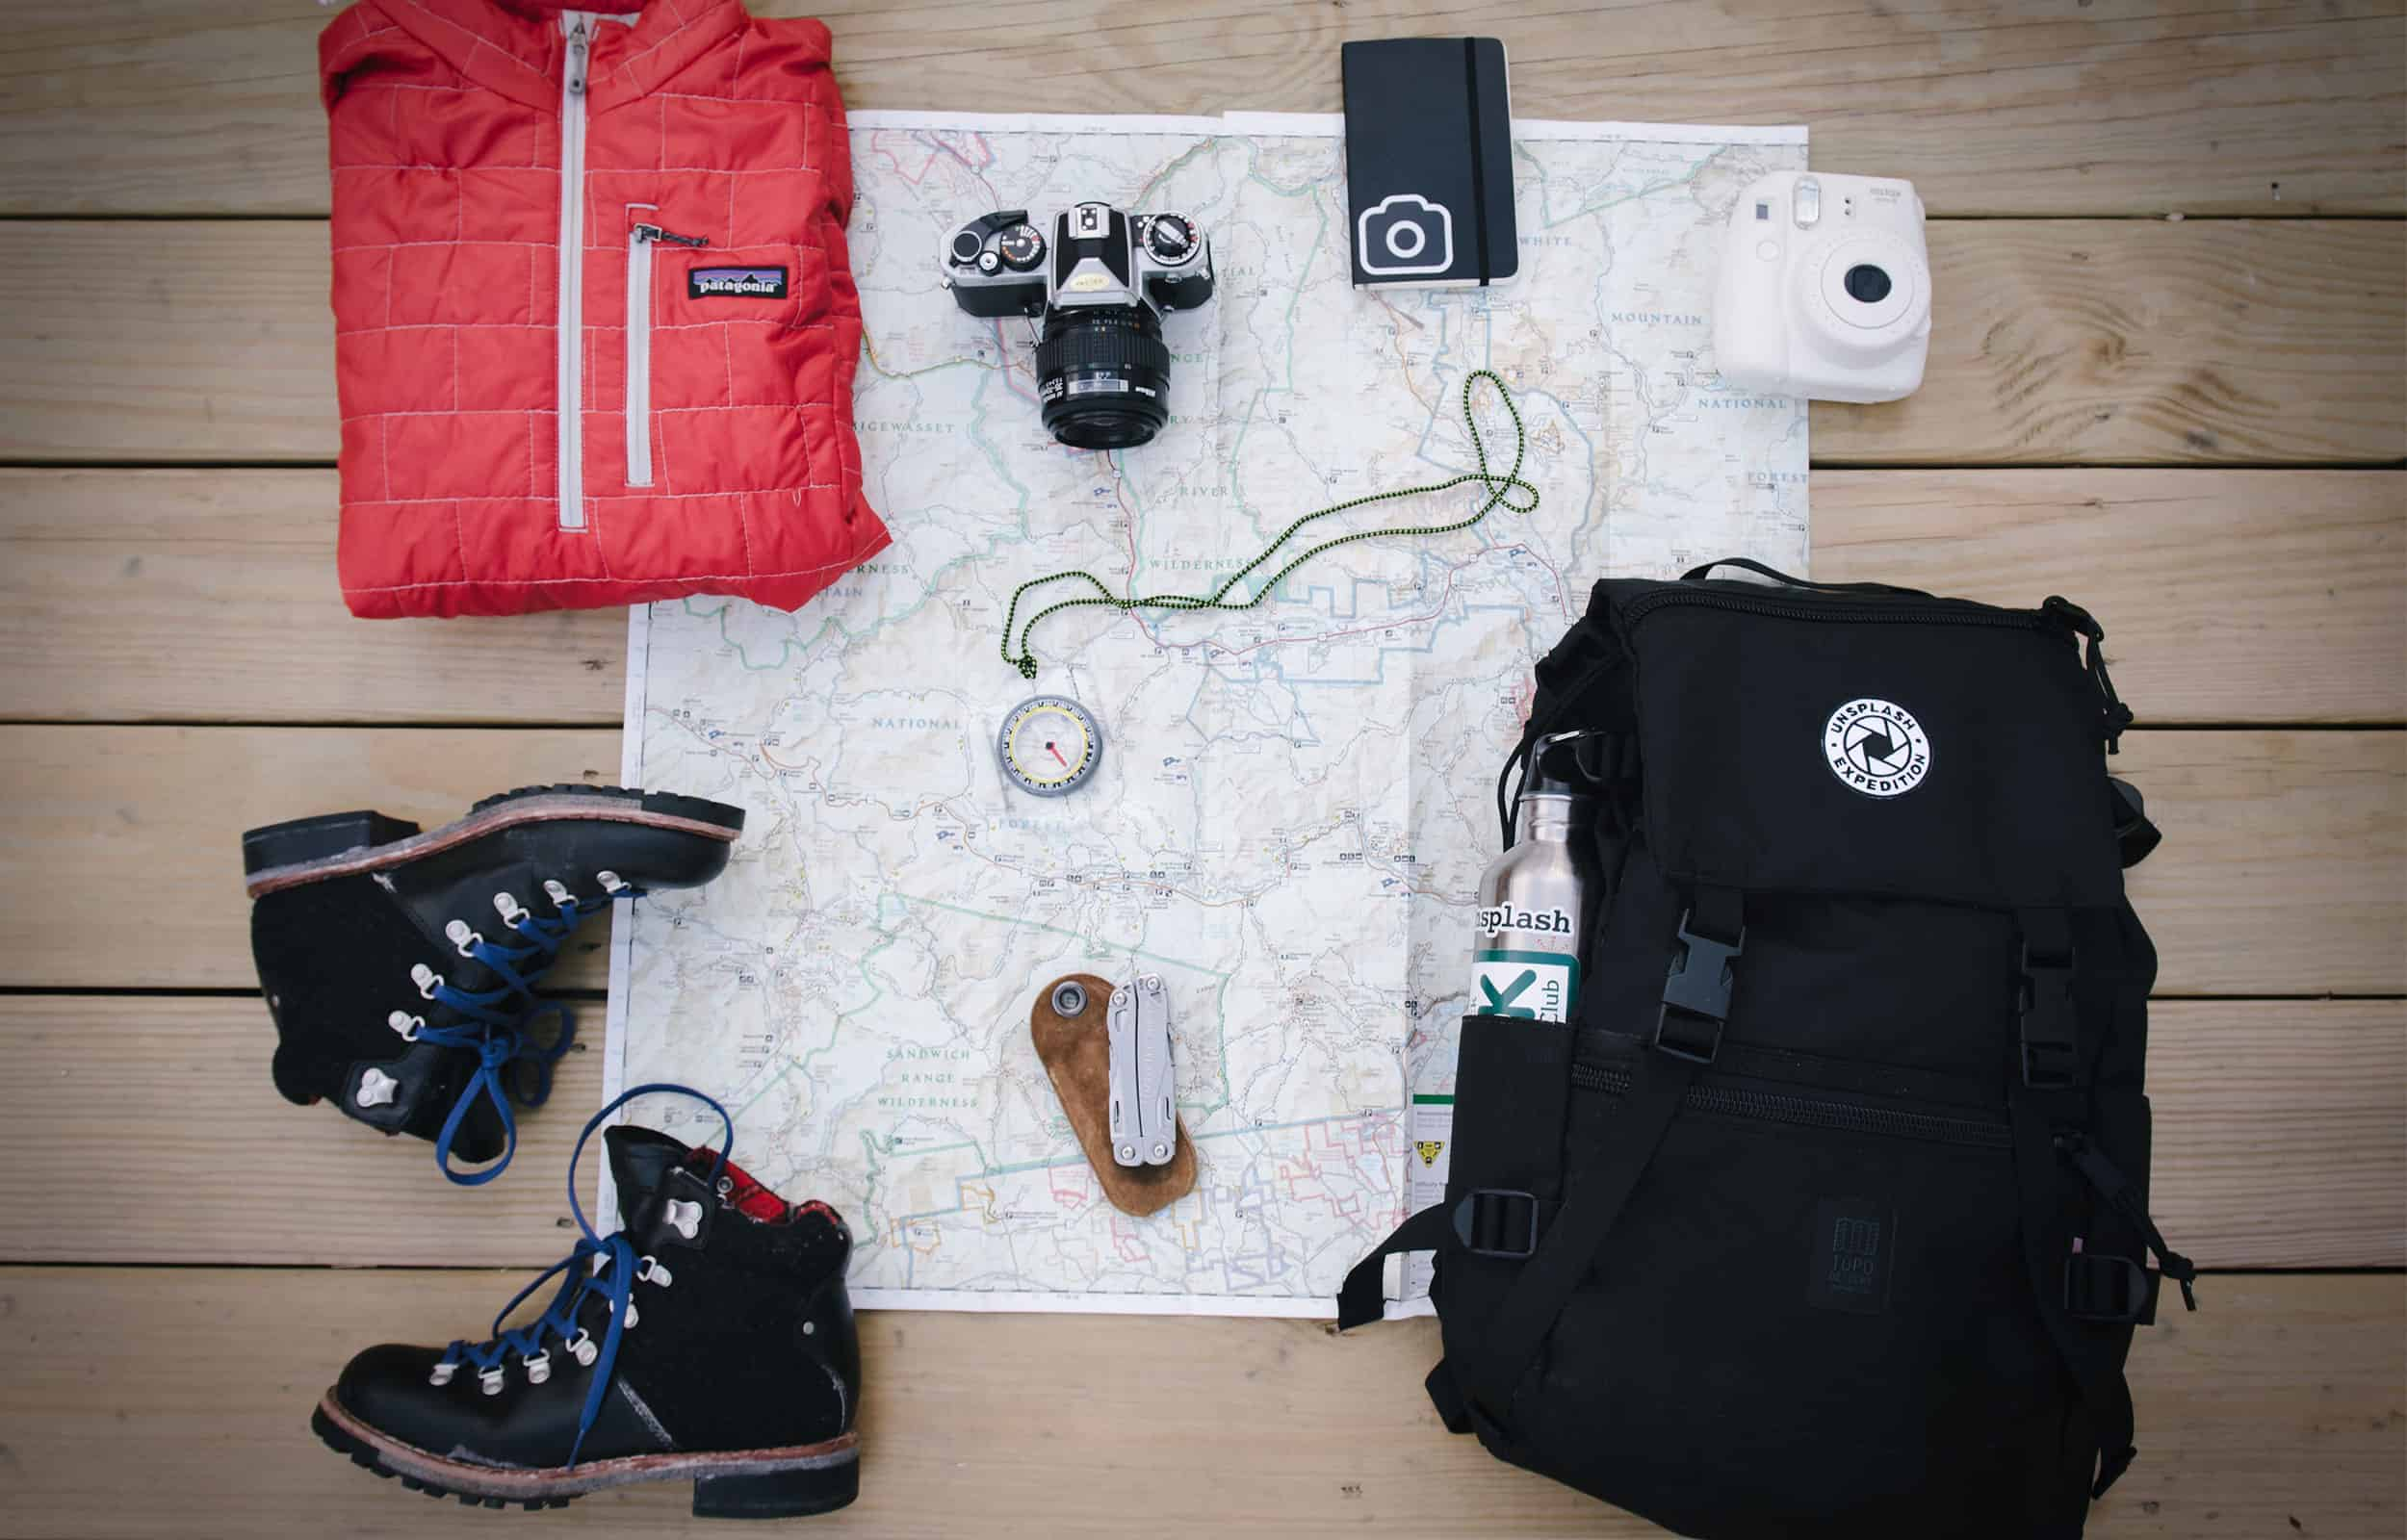 hiking gears pf backpack, camera, hiing boots, hiking jacket, compass, and a map